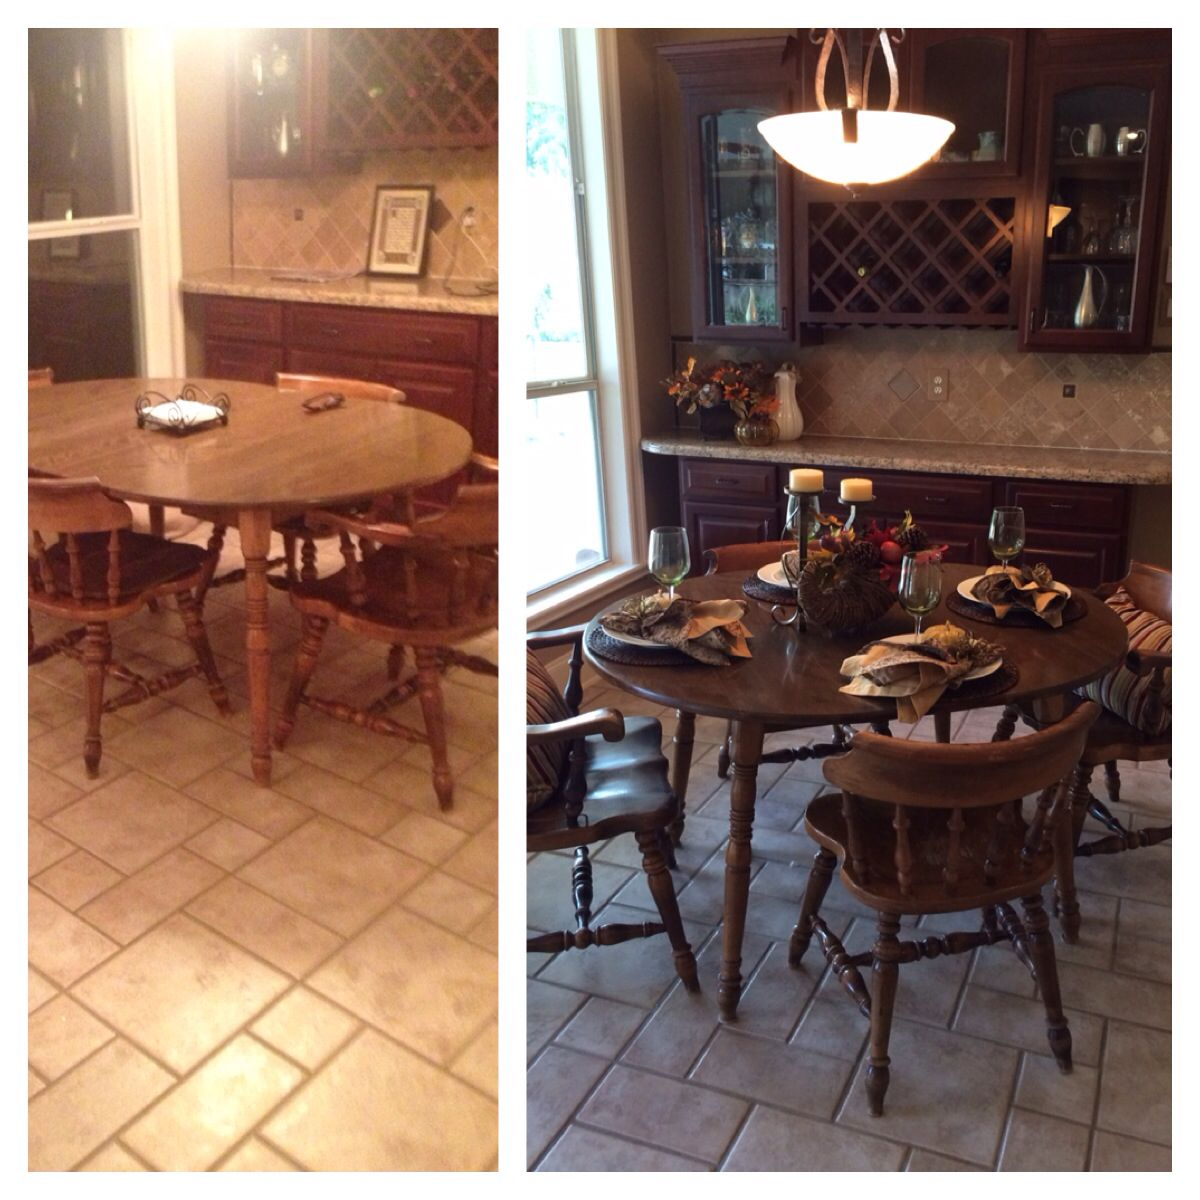 Kitchen Staging Before And After: Before/ After Home Staging